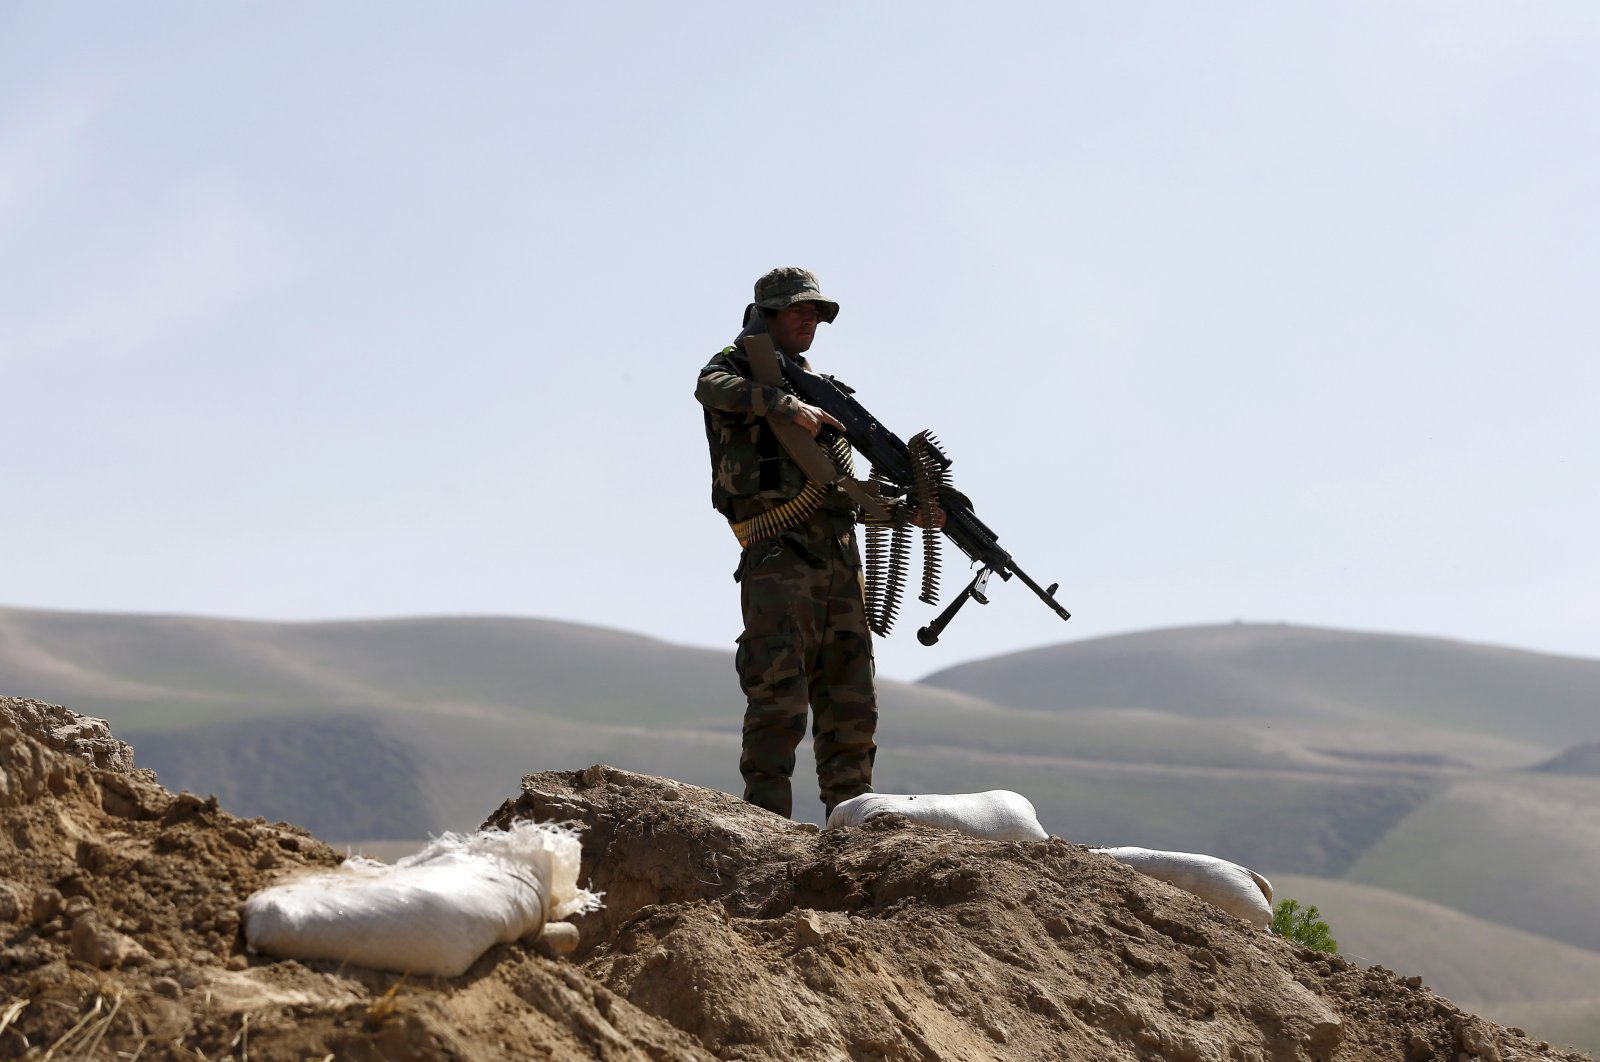 An Afghan National Army (ANA) soldier keeps watch during a patrol in Dand Ghori district of Baghlan province, Afghanistan on March 15, 2016. (Reuters Photo)